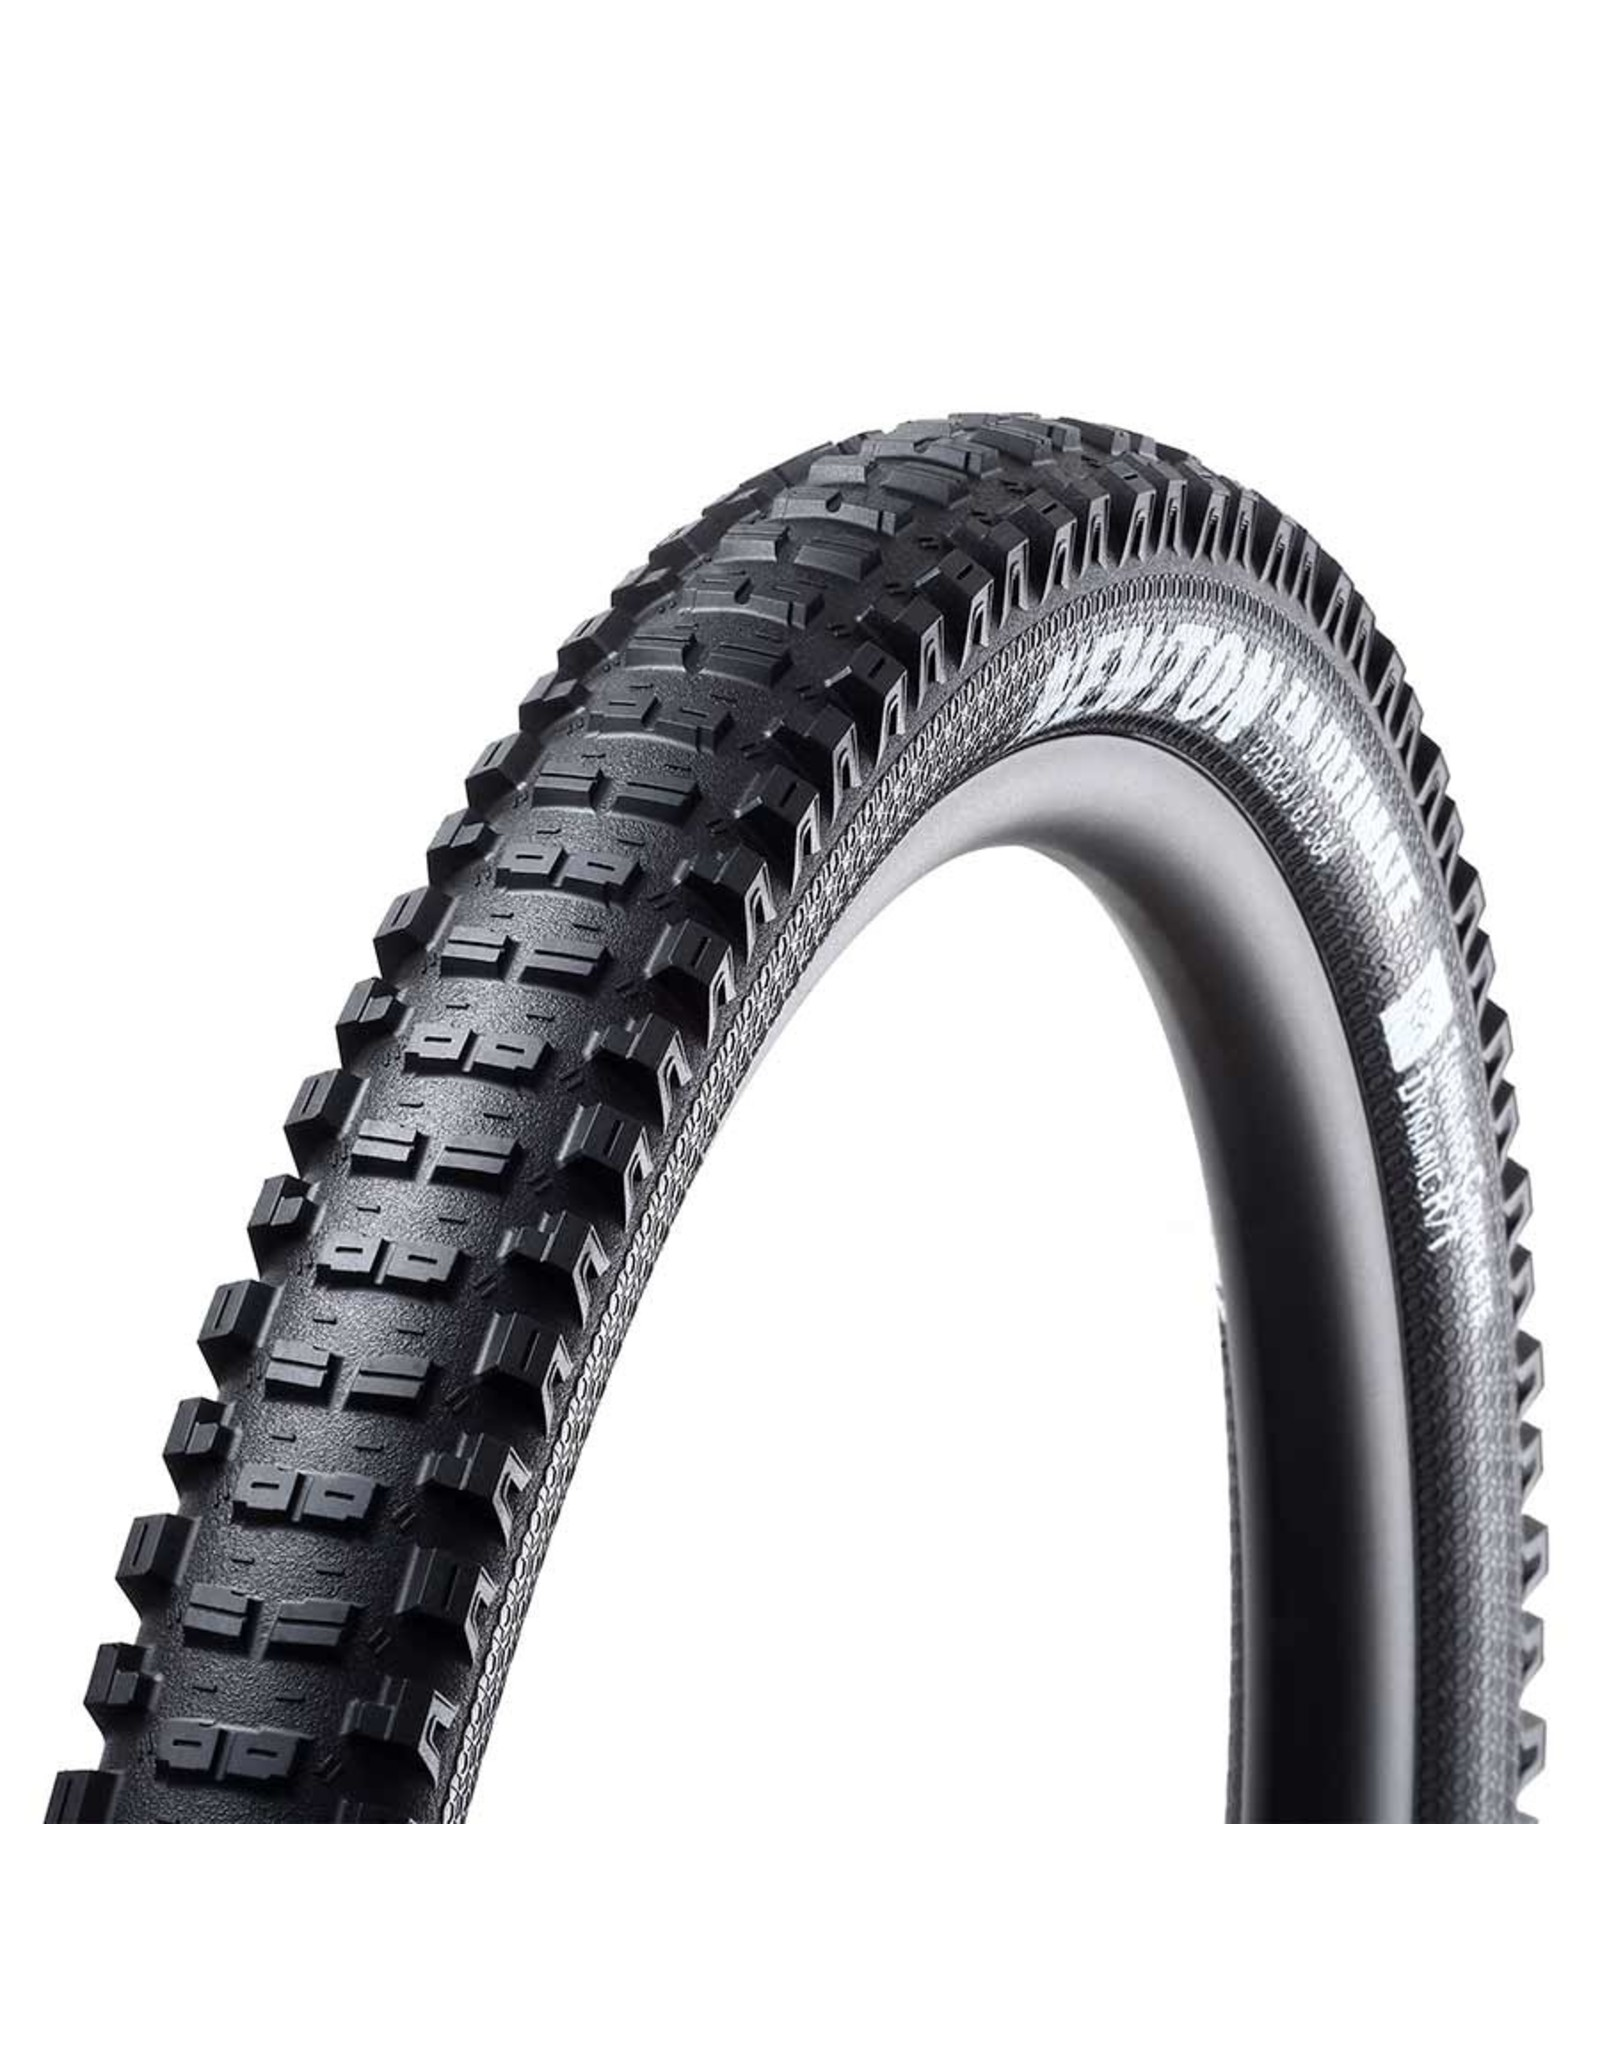 Goodyear Goodyear, Newton, Tire, 27.5''x2.60, Folding, Tubeless Ready, Dynamic:RS/T, DH Ultimate, 240TPI, Black